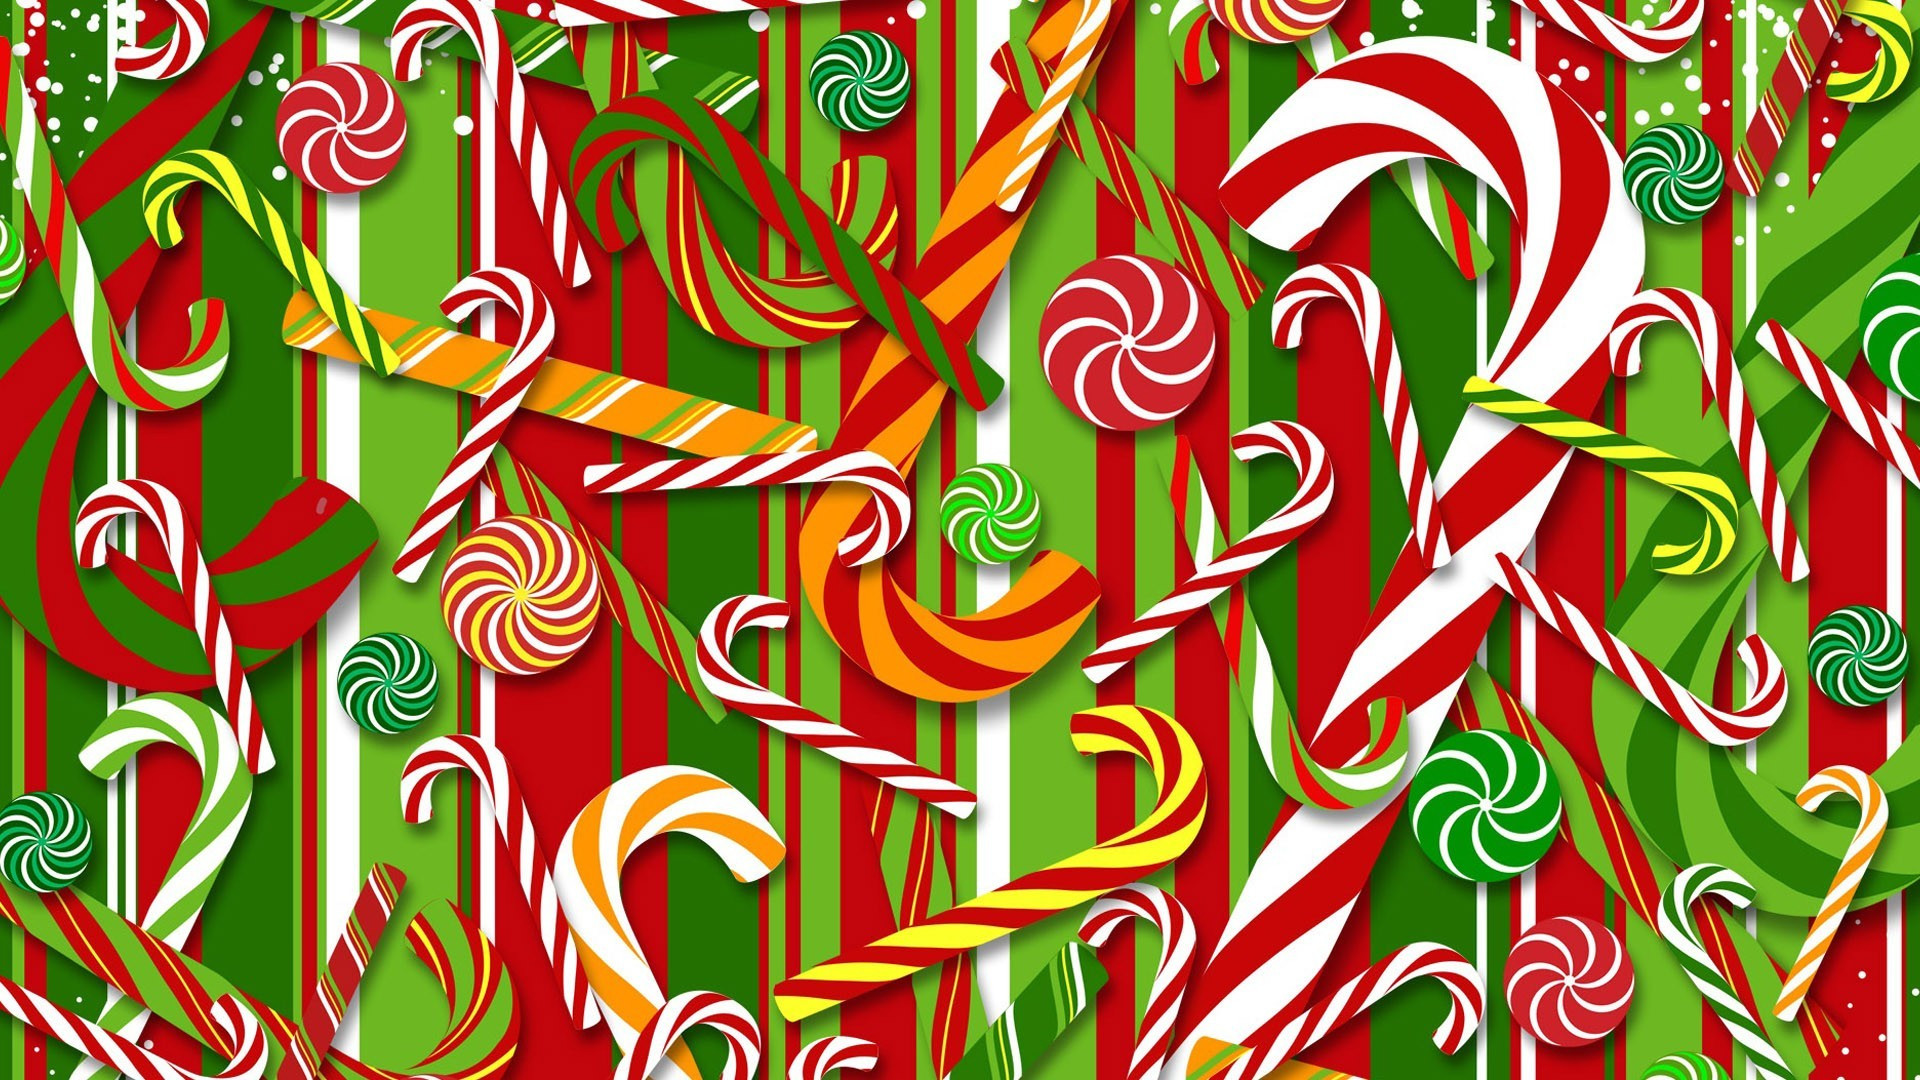 Christmas Candy Cane Background  Christmas Candy Cane Wallpaper WallpaperSafari